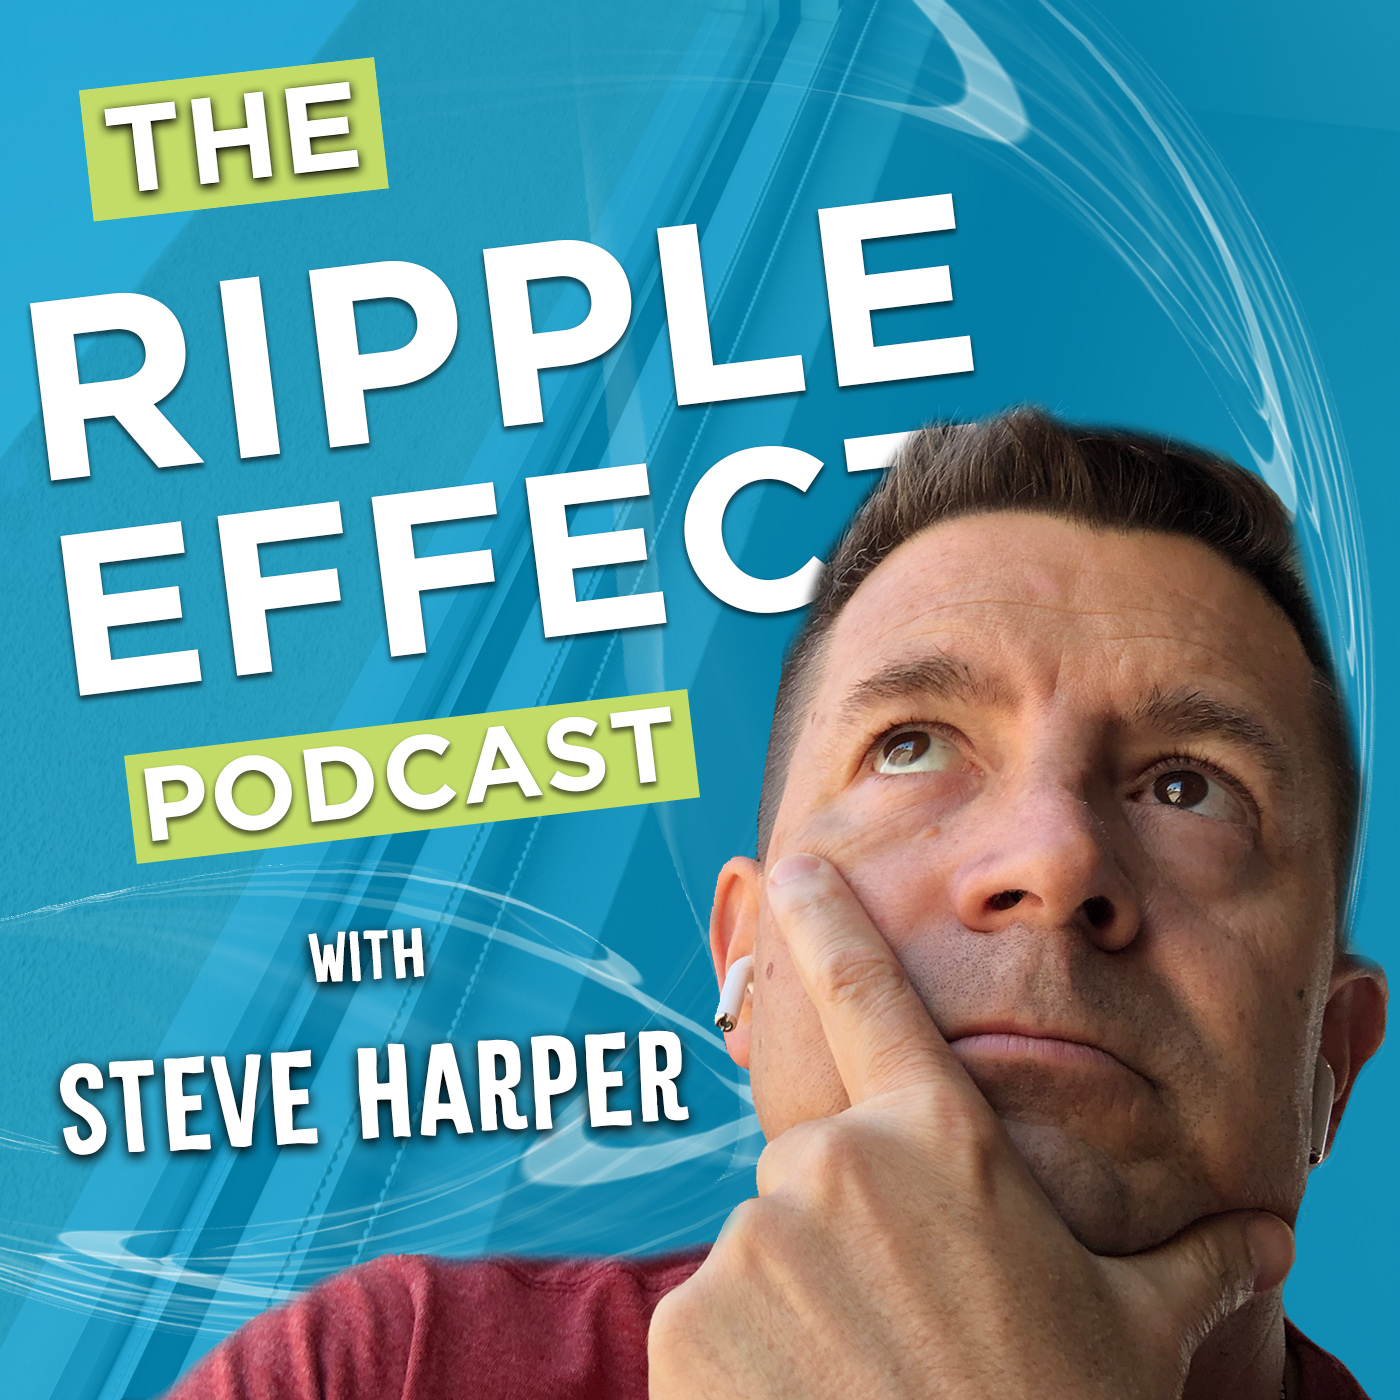 The Ripple Effect Podcast with Steve Harper show art